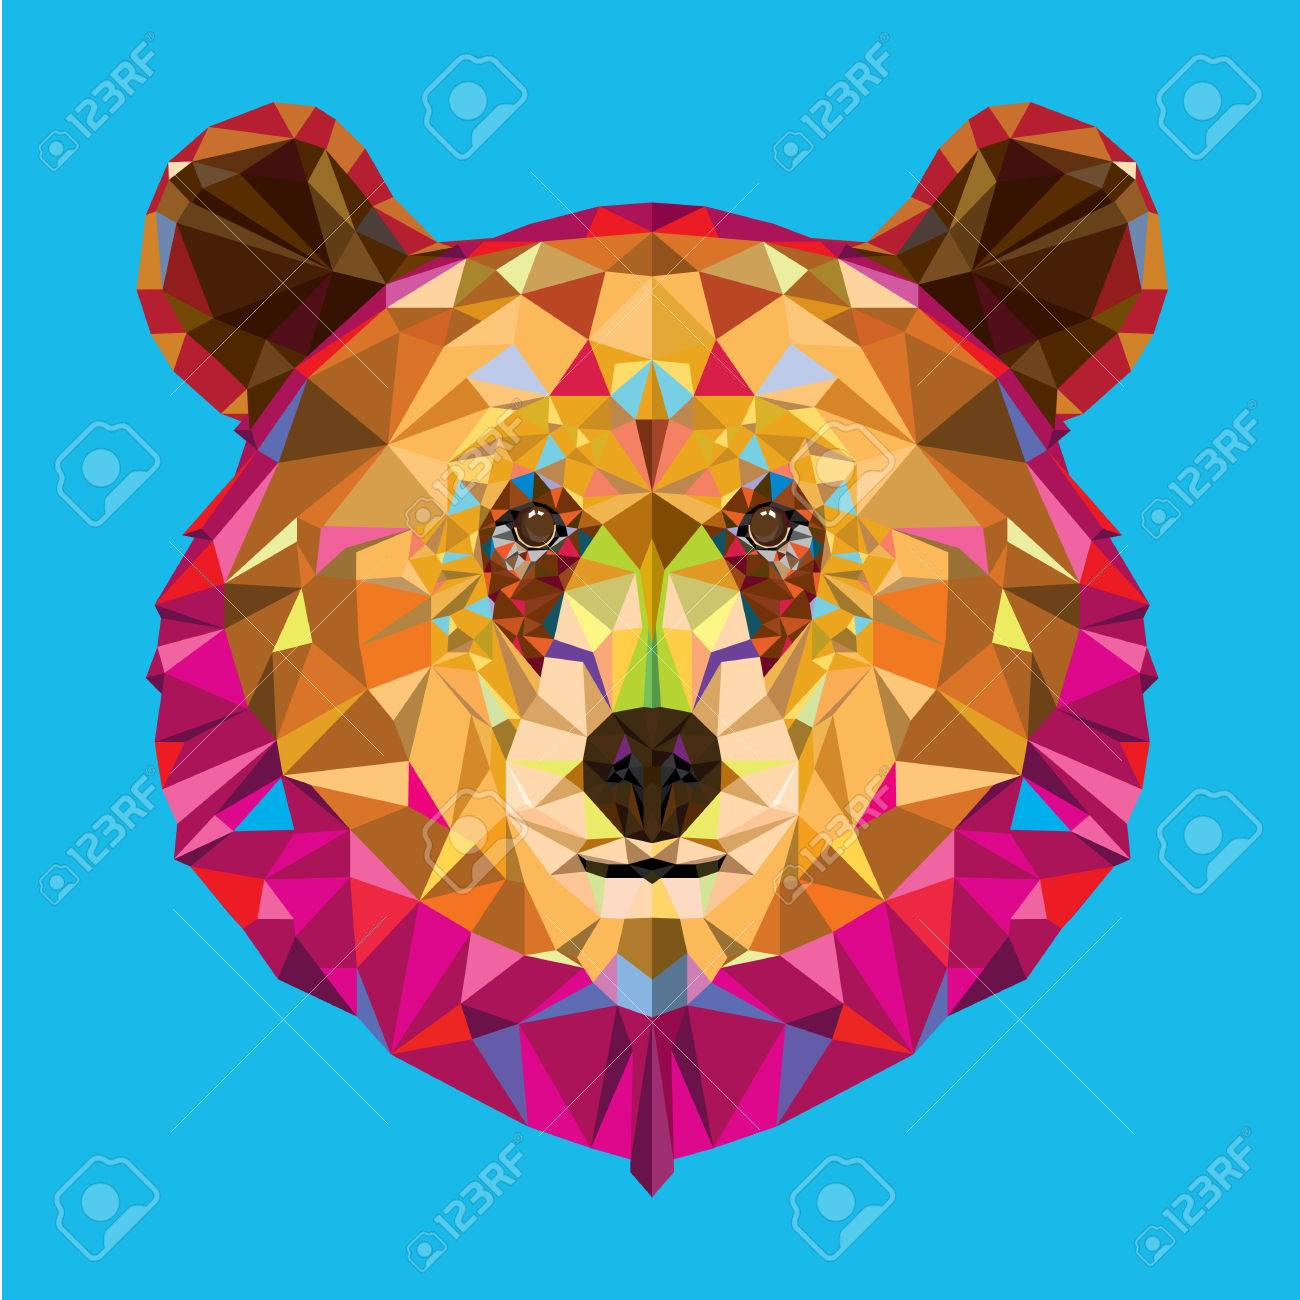 Head of grizzly bear in geomeyric pattern - 27695393